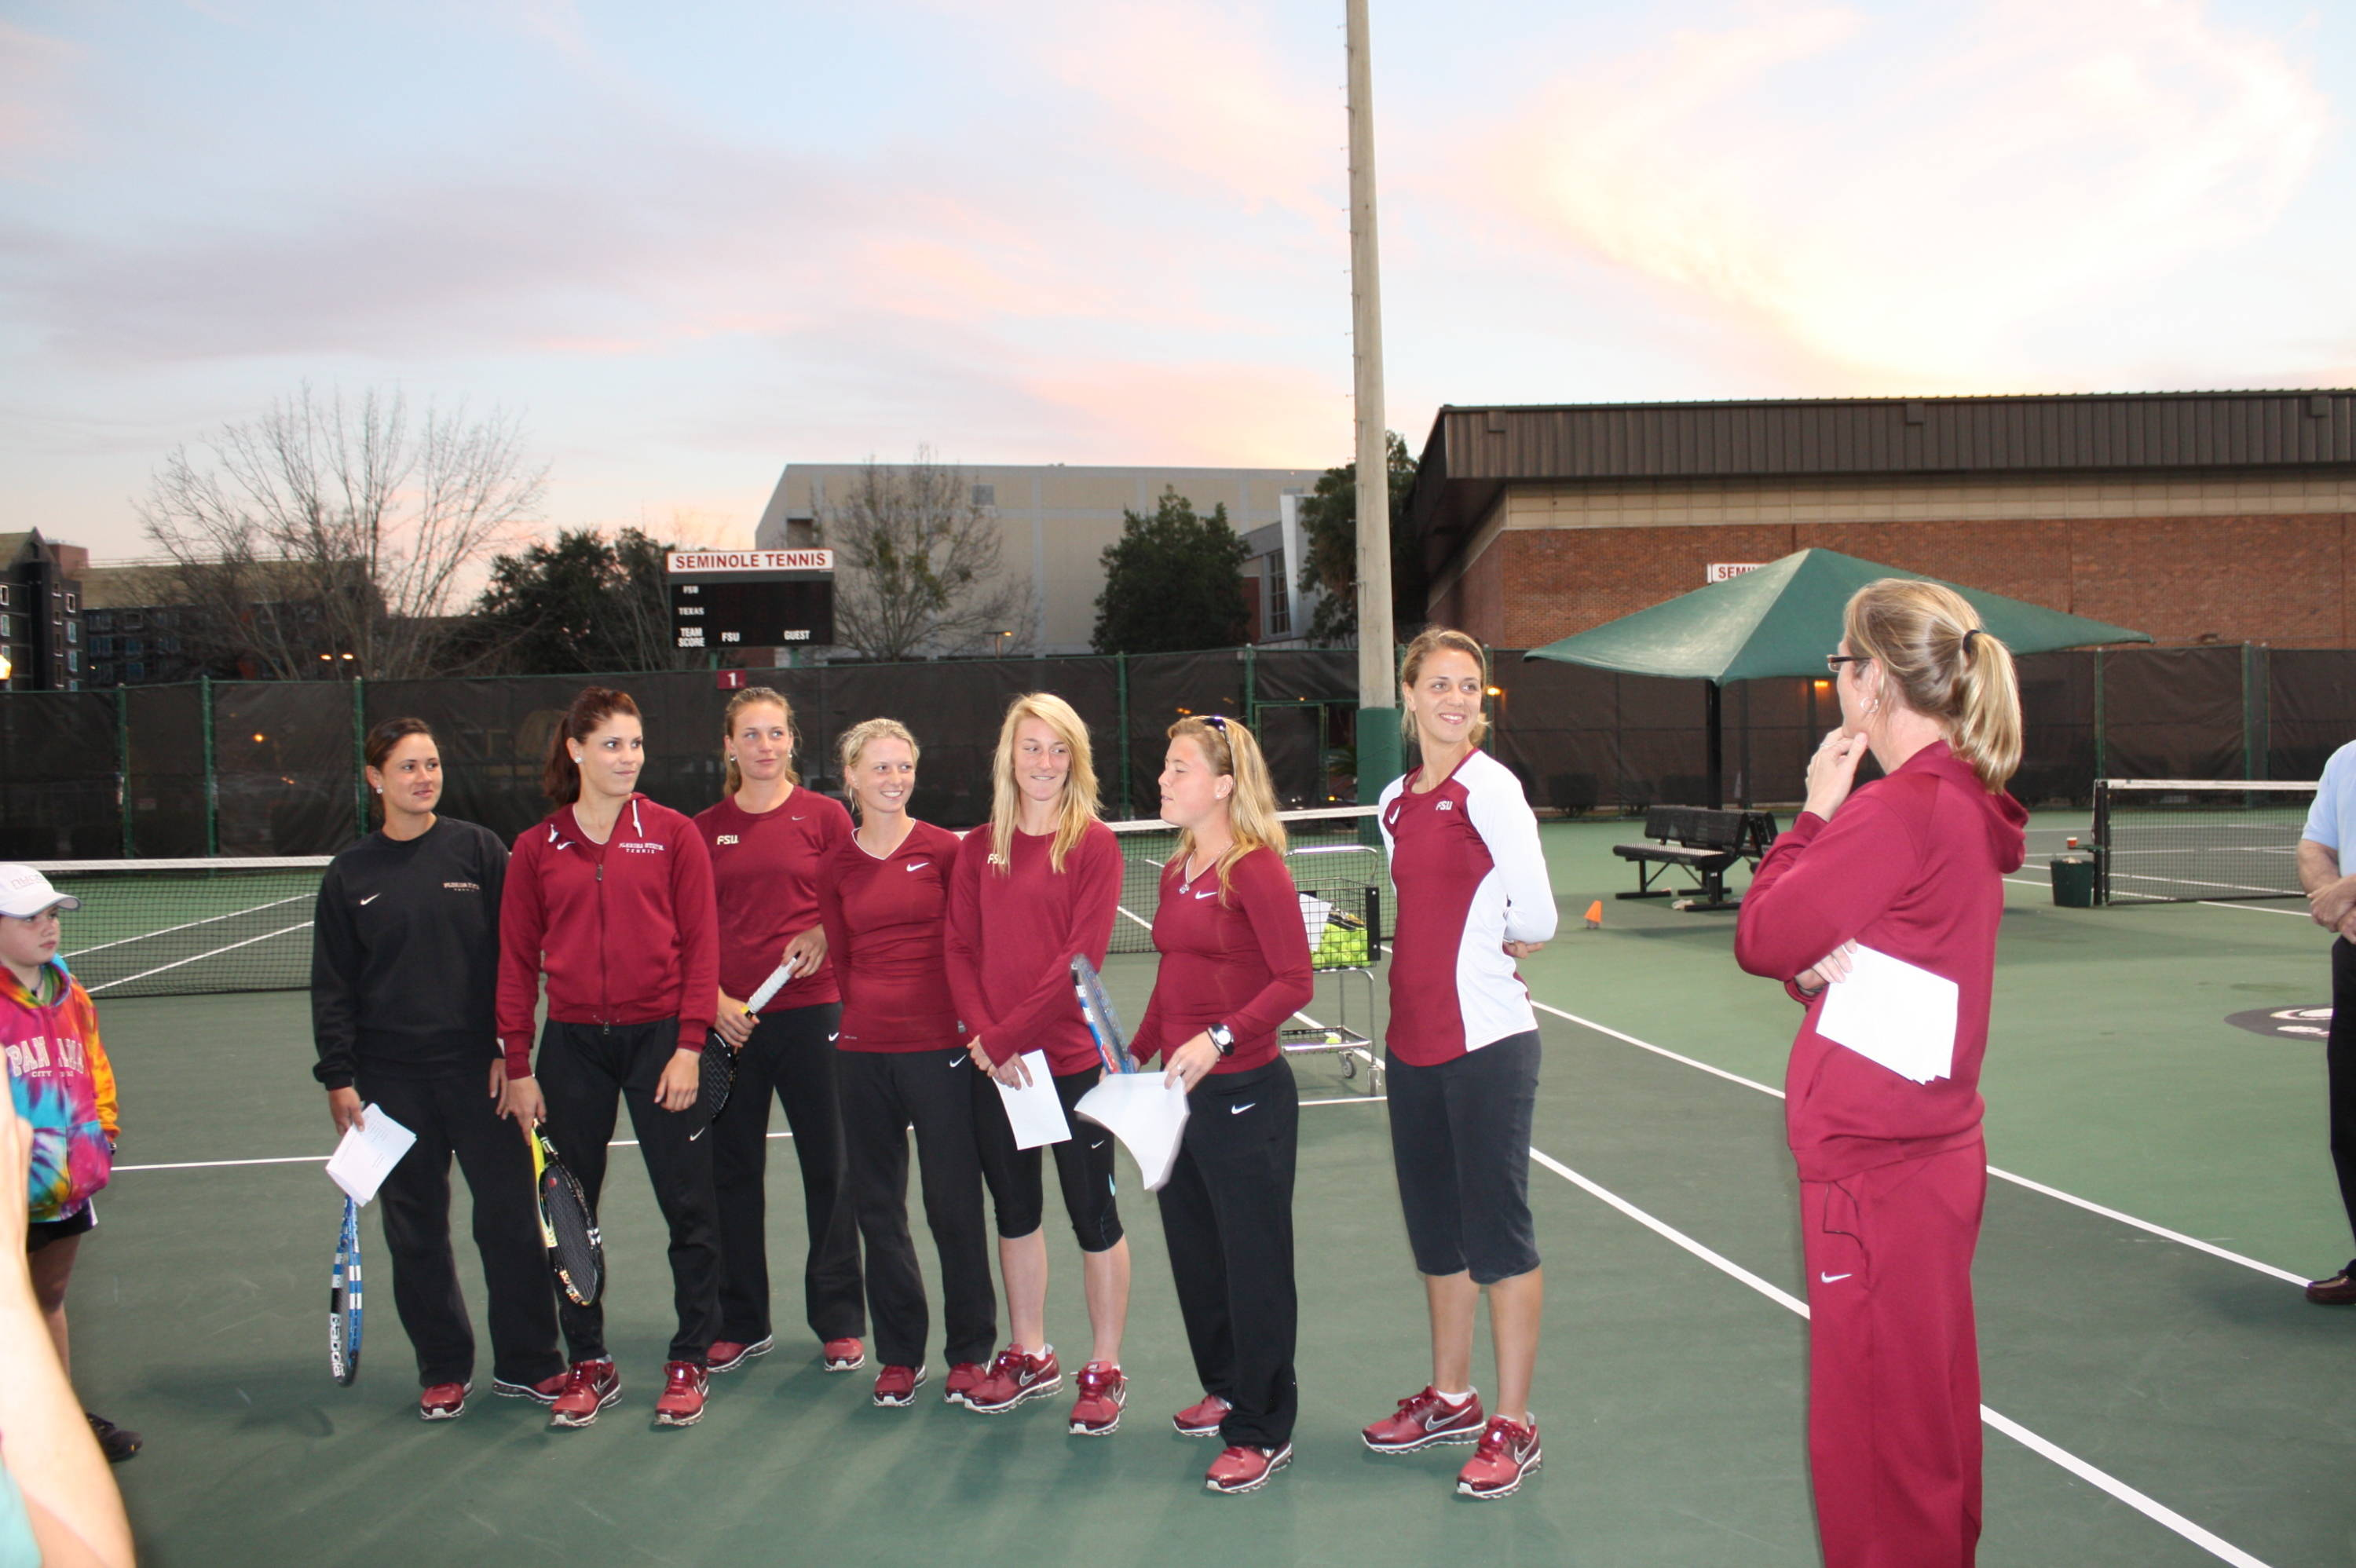 Women's tennis team introduces themselves